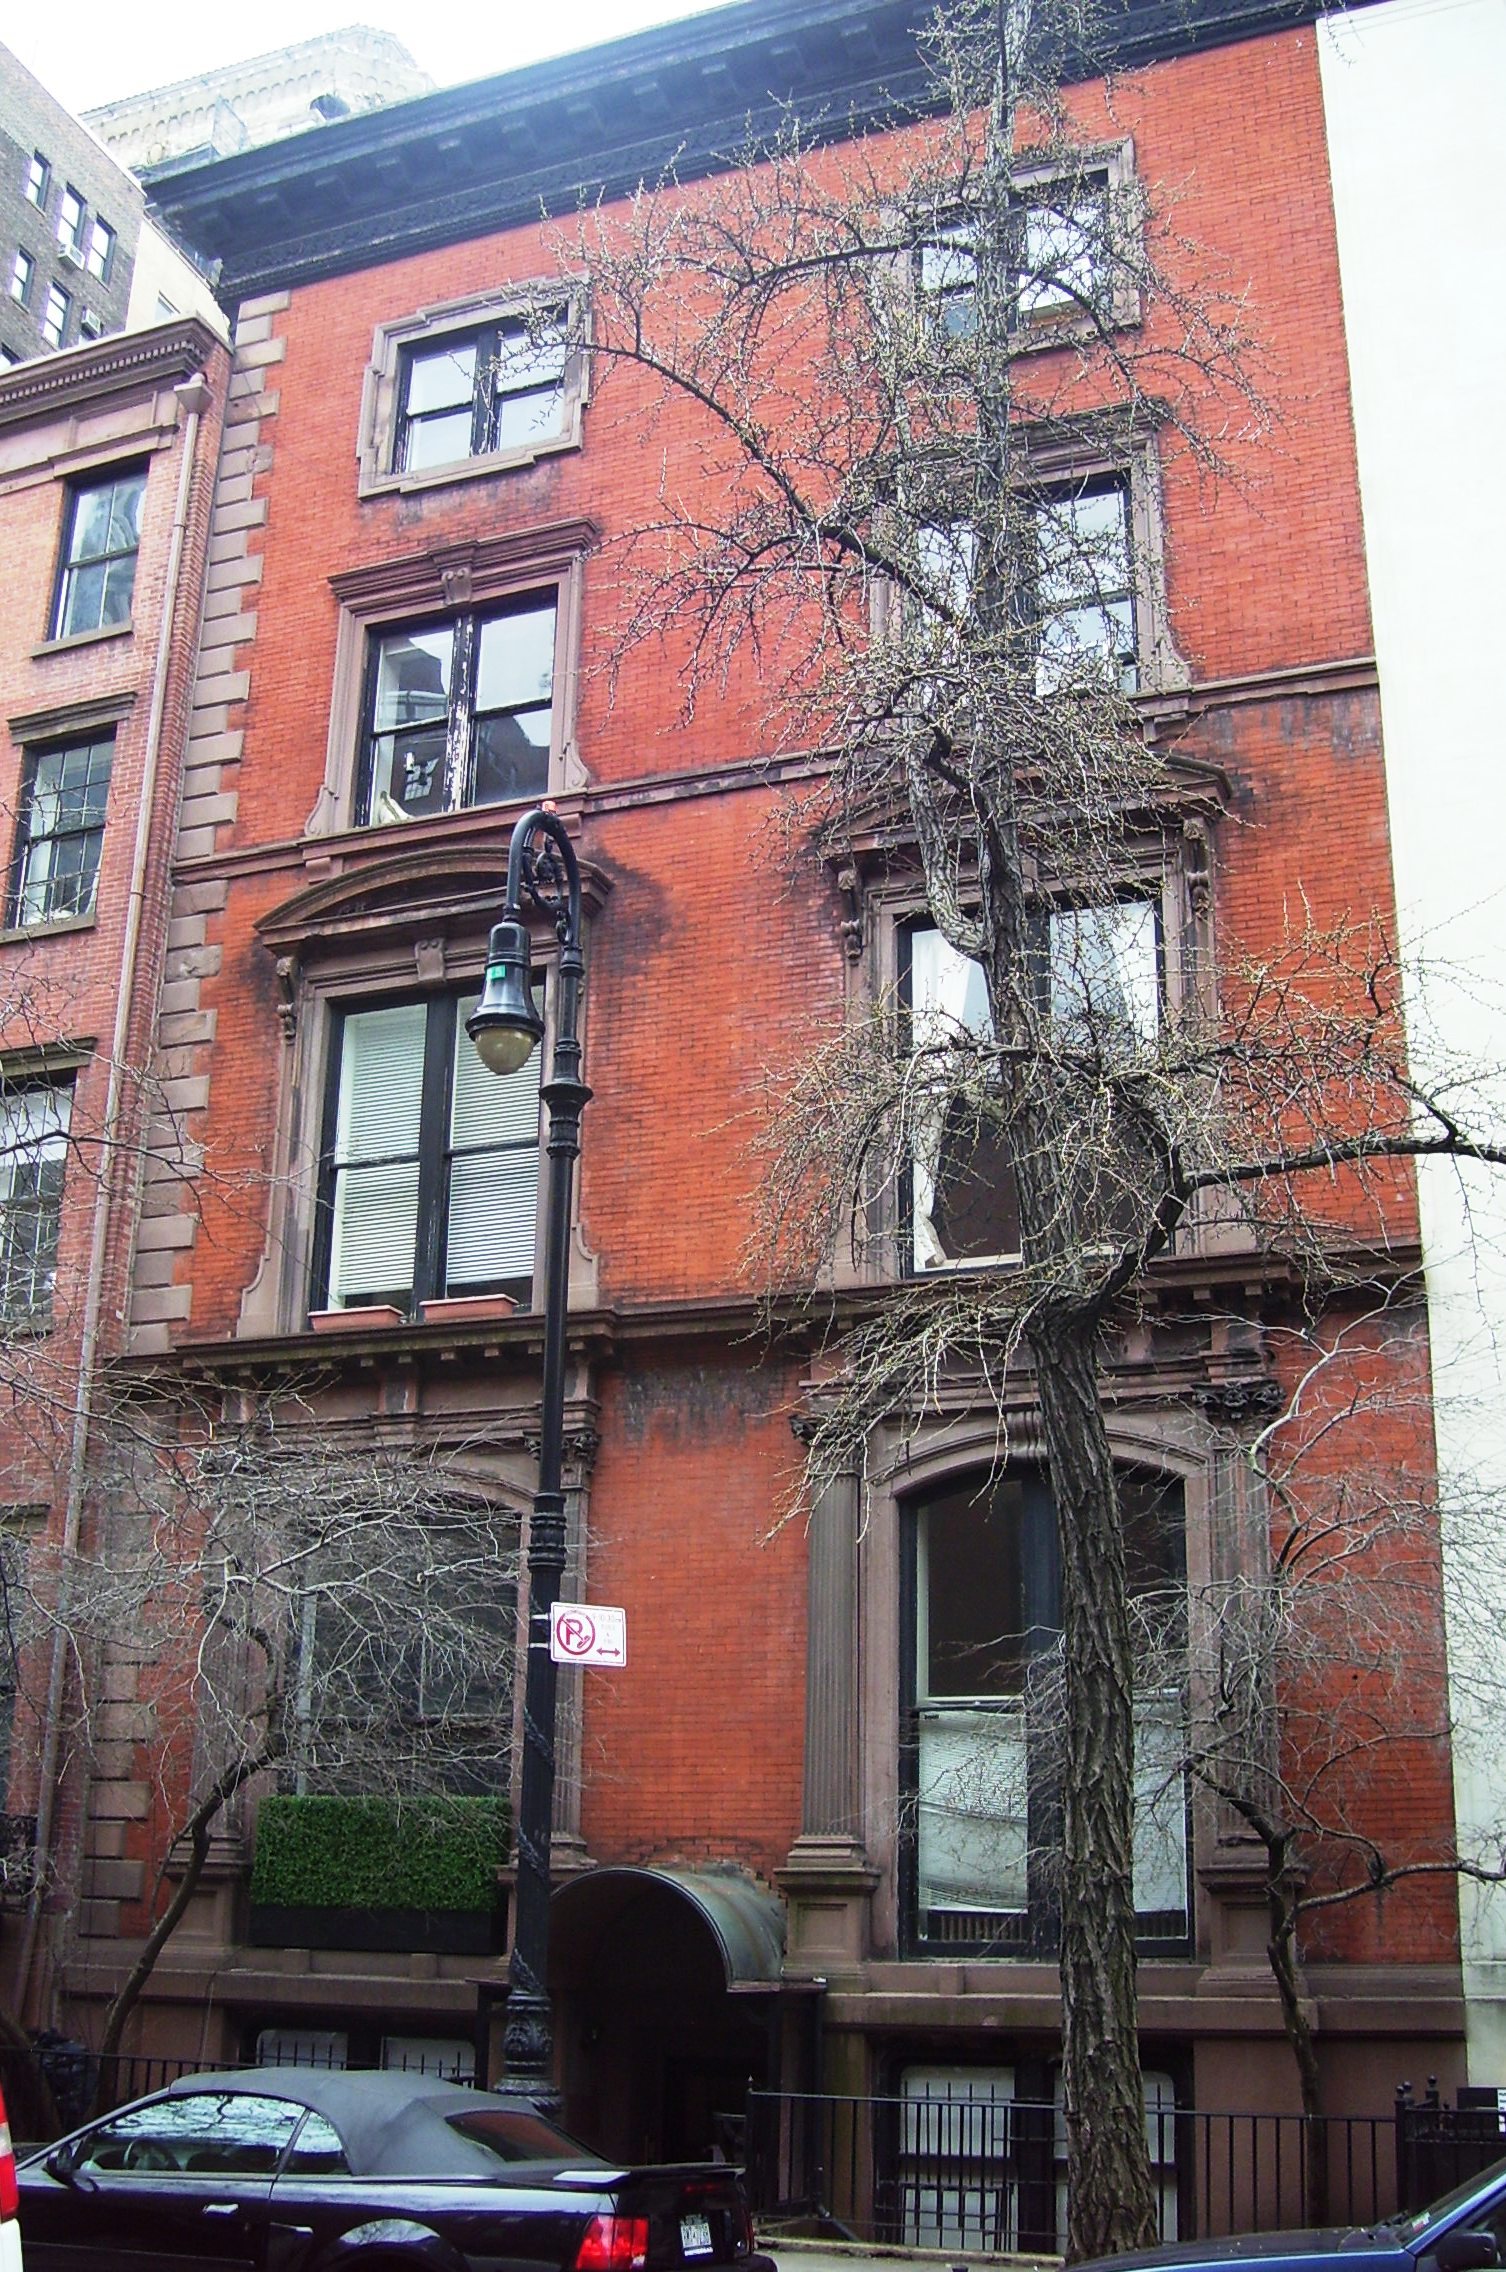 14 West 10th Street house is widely considered among the most haunted places in New York